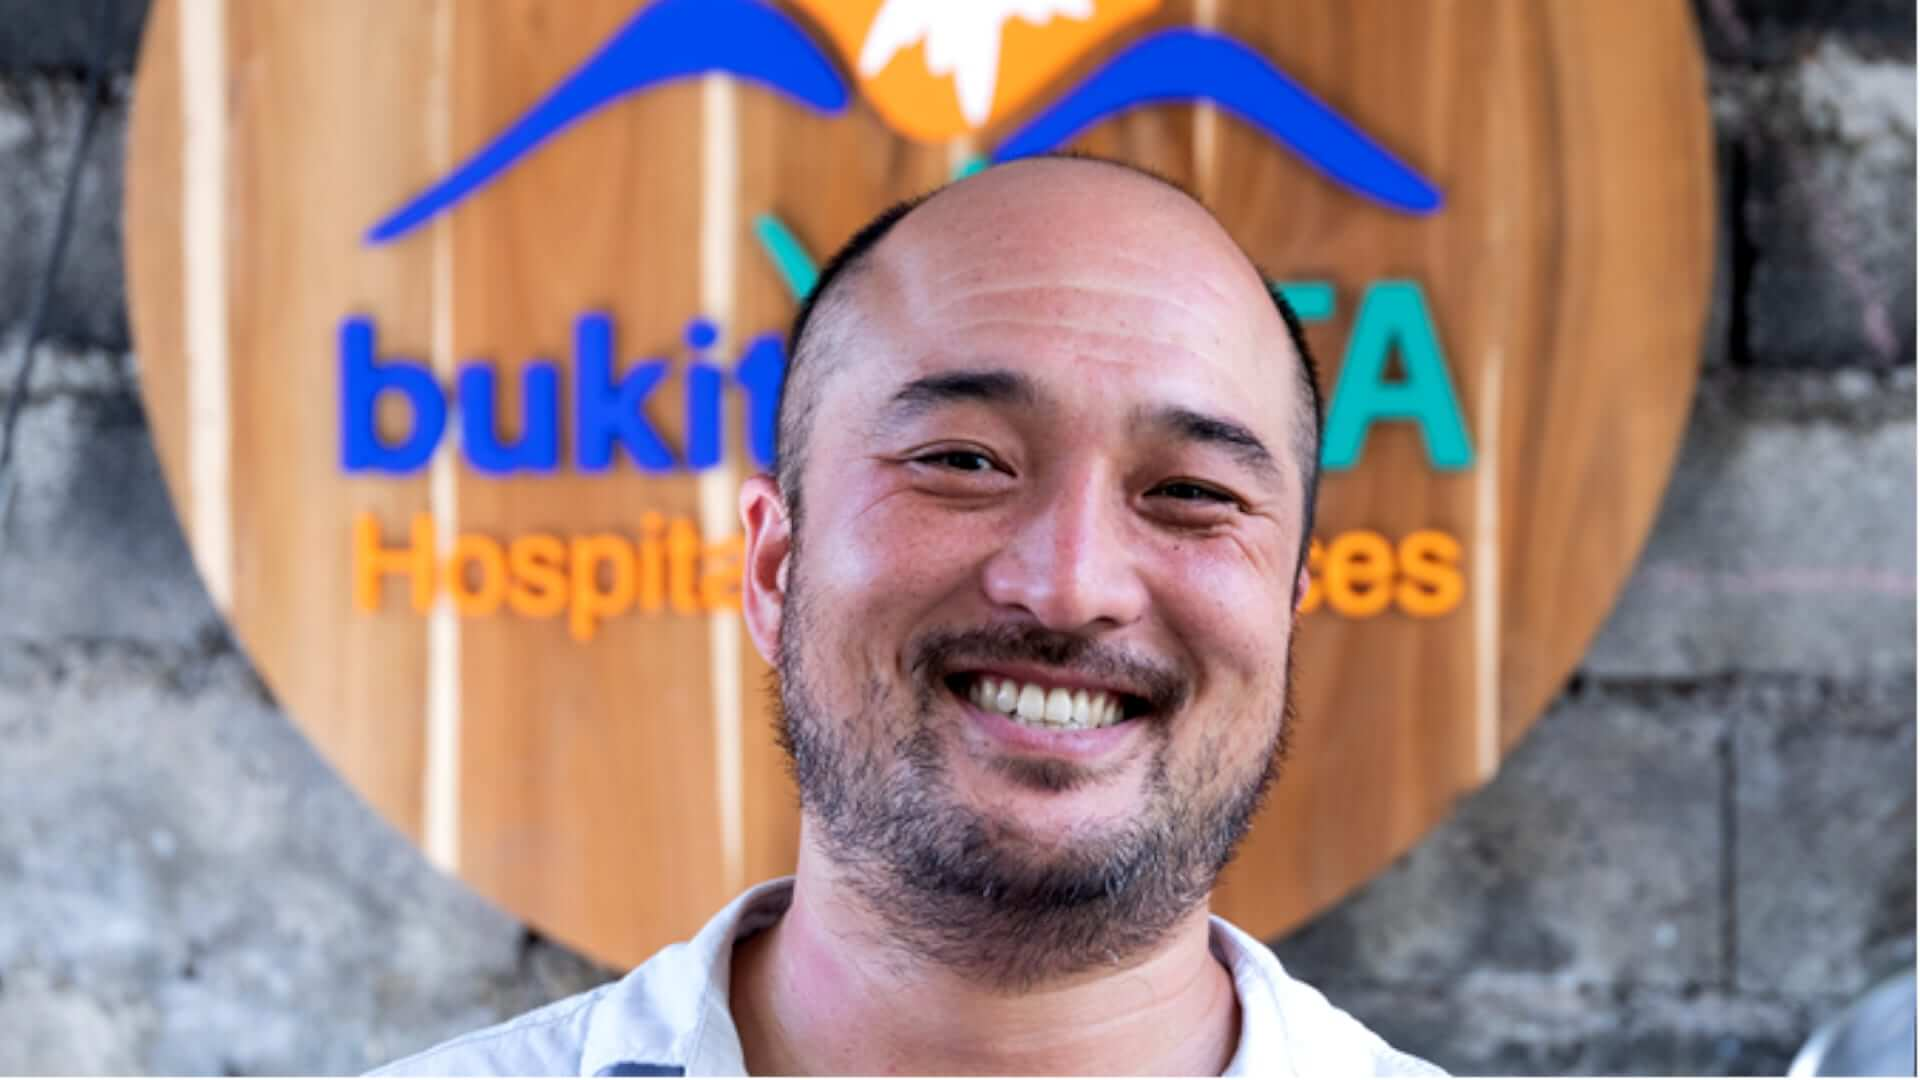 Owner of Bukit Vista company smiling in a picture with the company logo in the background.